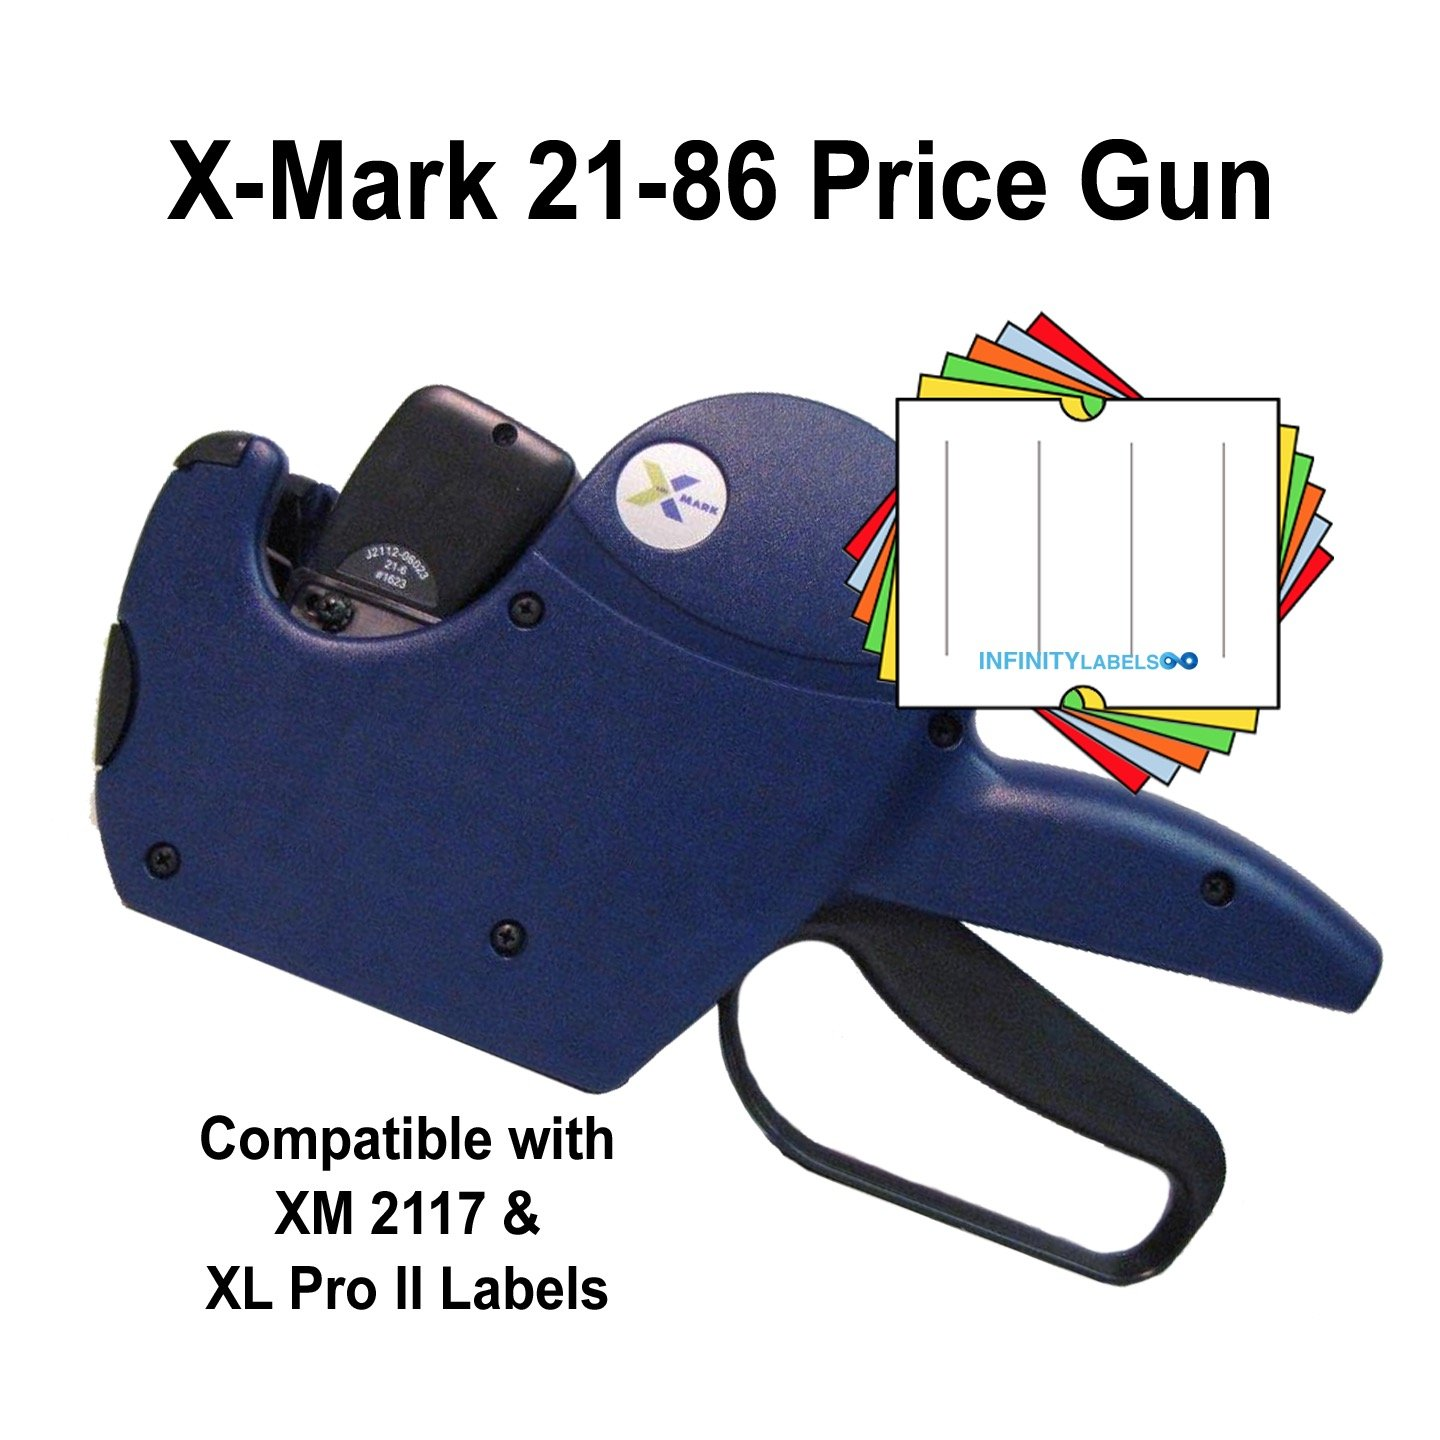 X-Mark Price Guns (10): TXM 21-86 Bulk PRICING [2 Line / 8/6 Characters] by Infinity Labels